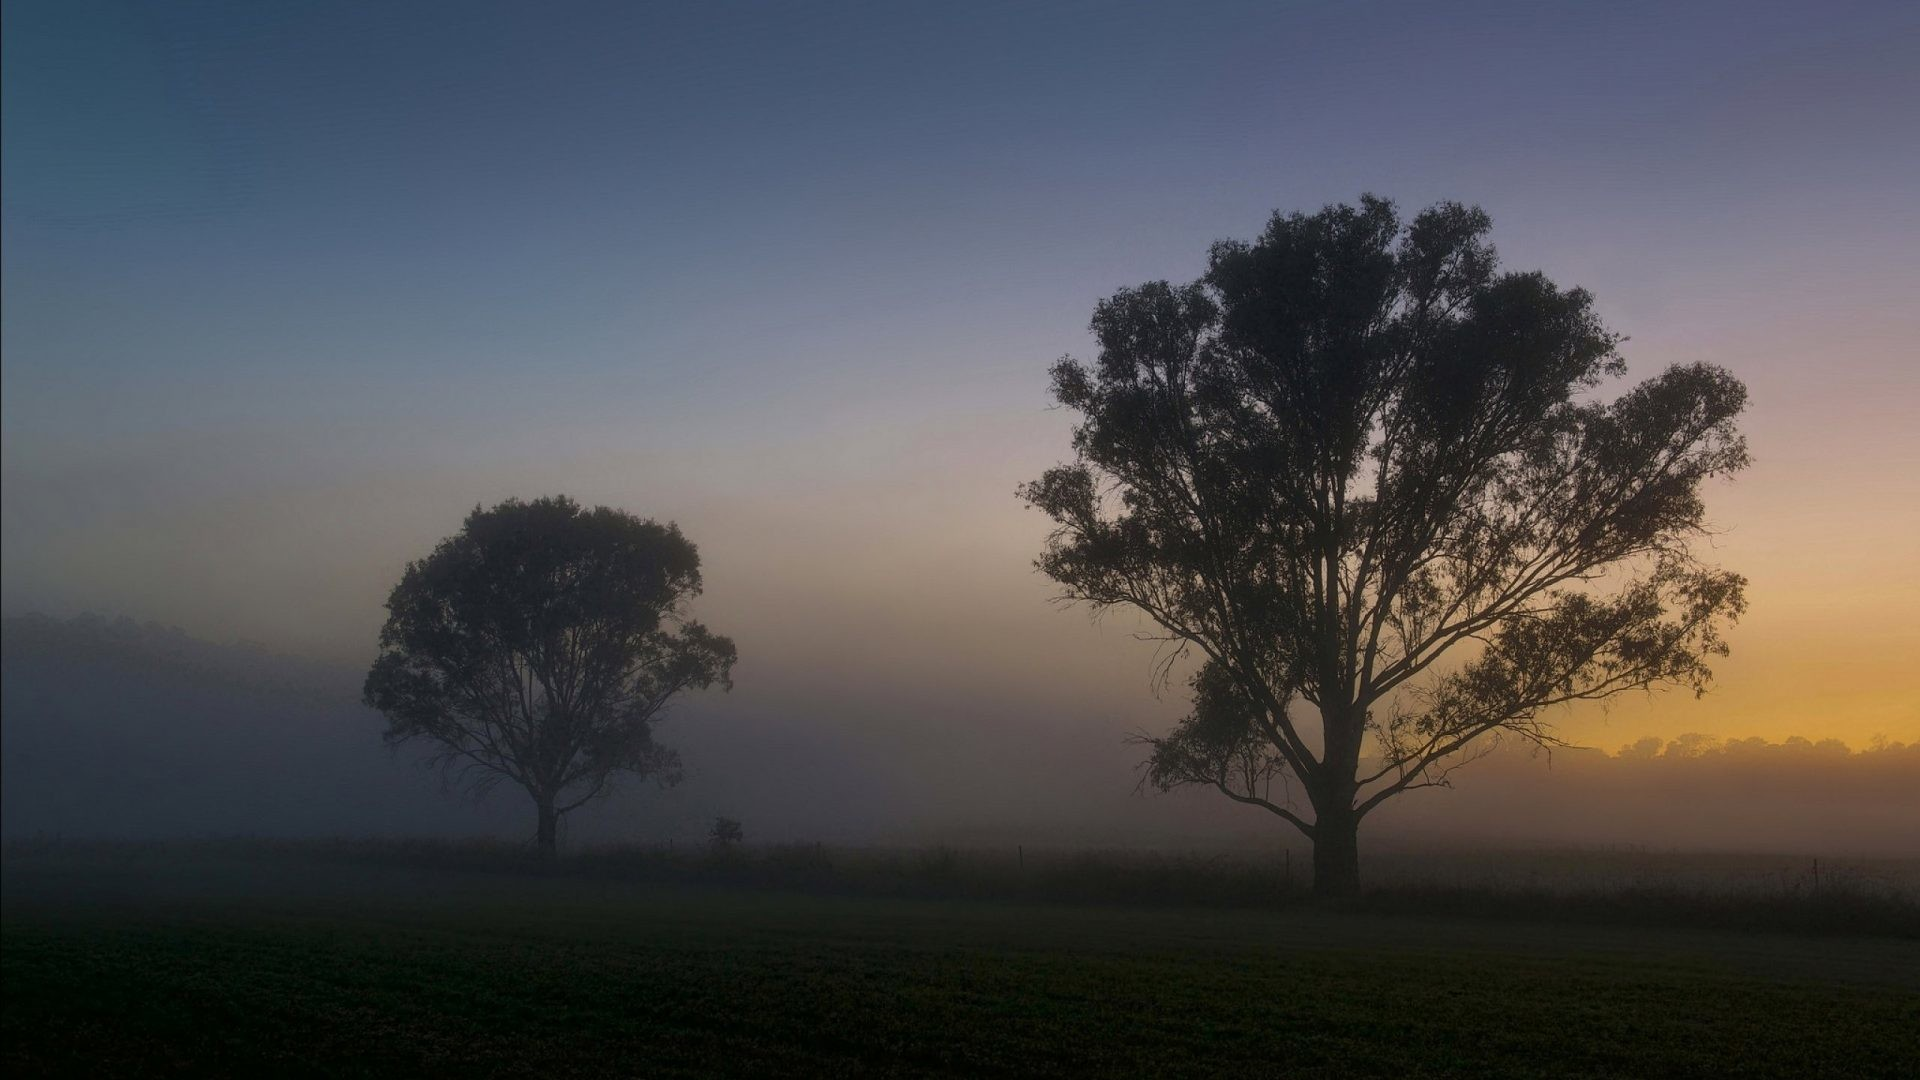 Trees – Fog Landscape Lonely Tree Nature Pictures Of Beauty for HD 16:9 High